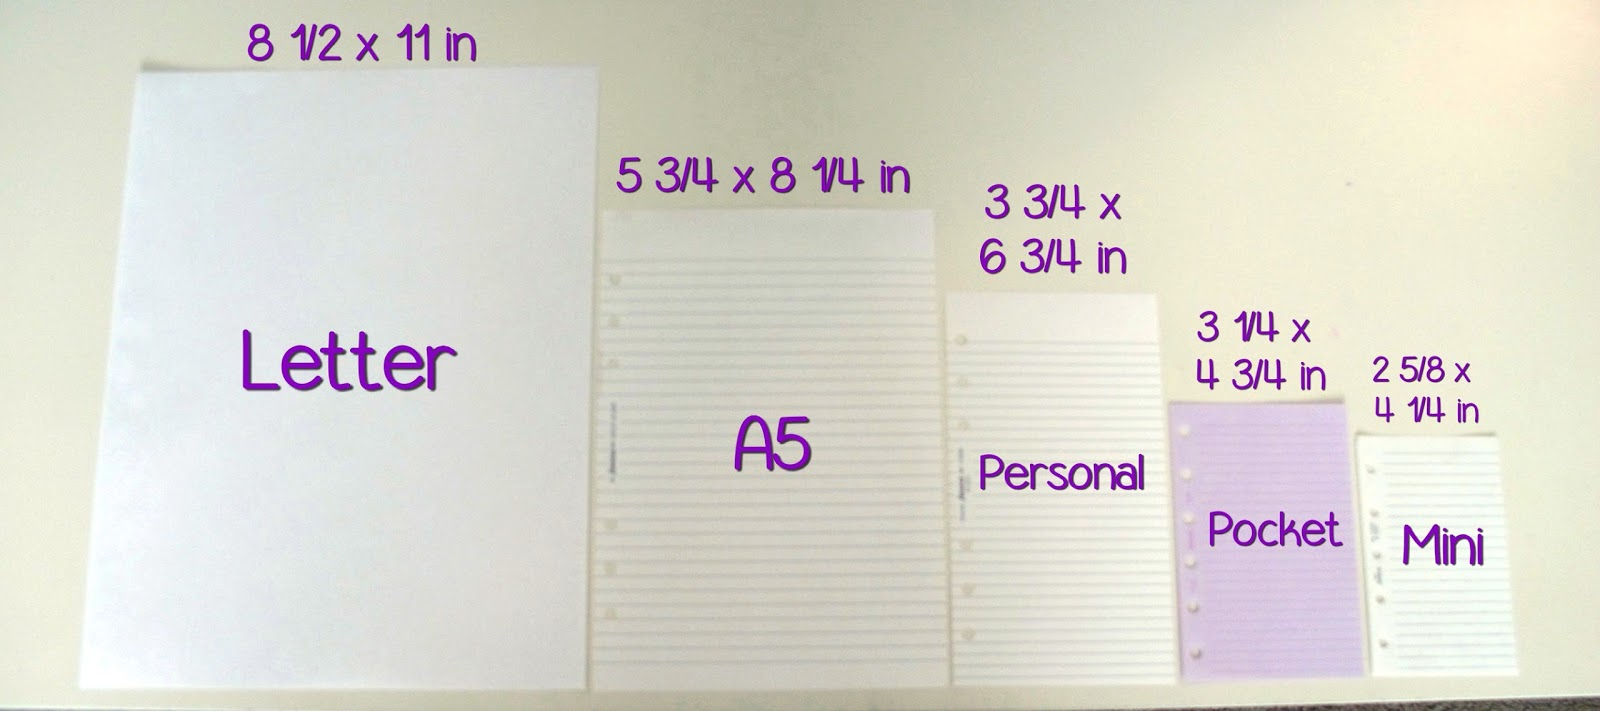 How to choose inserts refills for a filofax for Letter paper size in inches